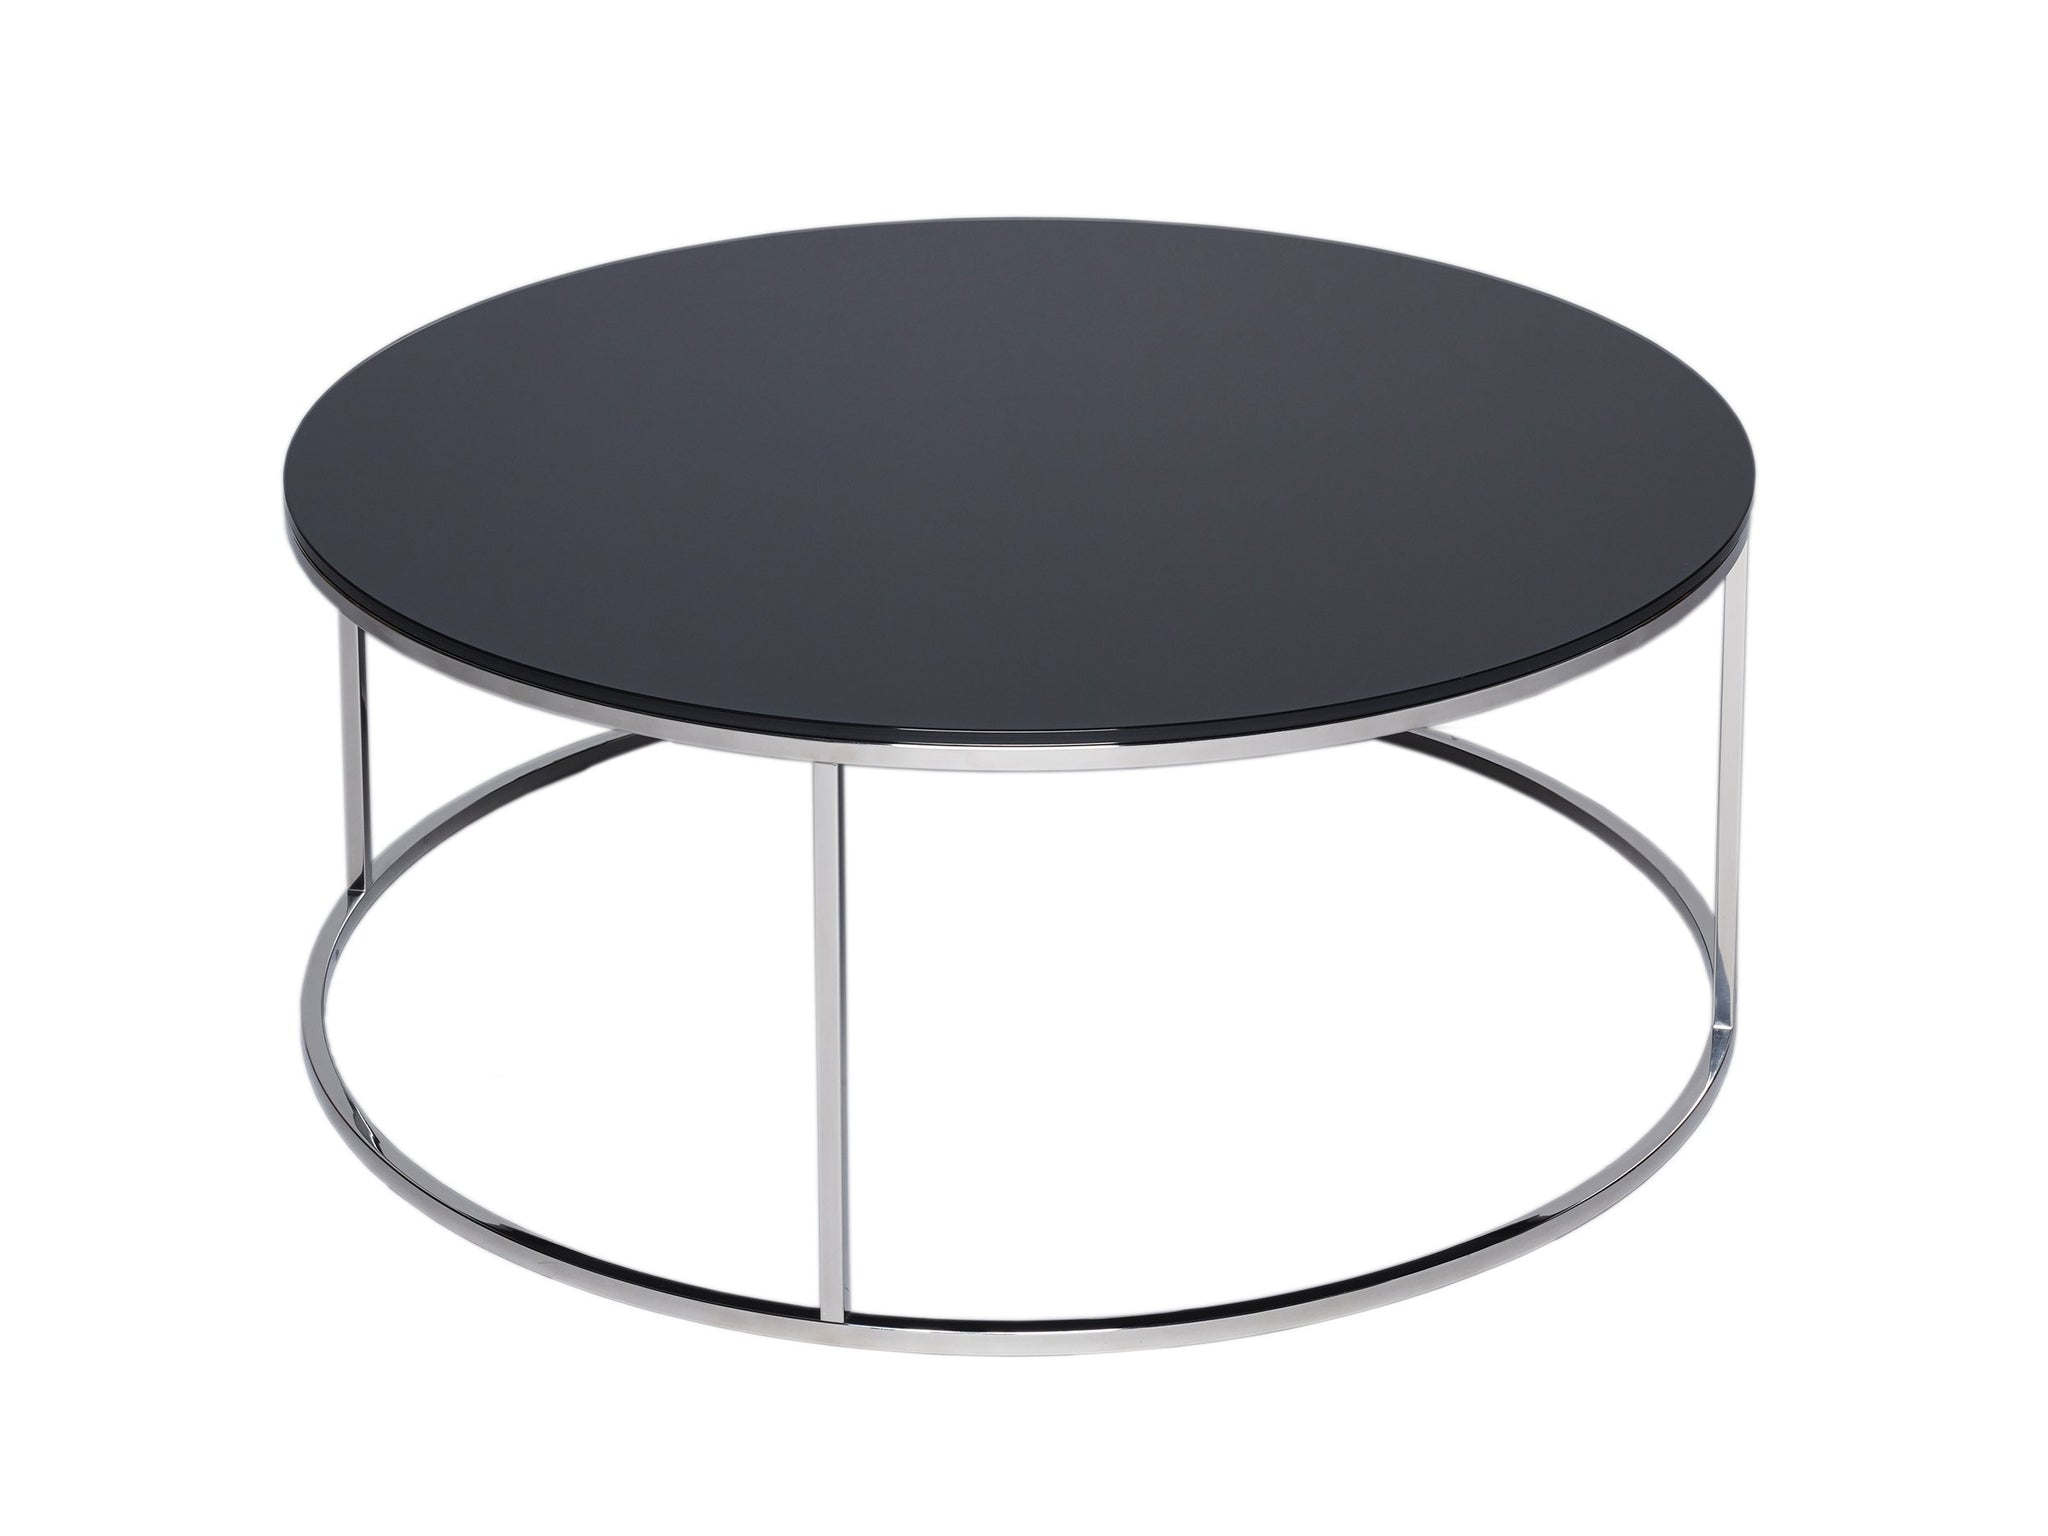 Circular Coffee Table - Kensal BLACK with POLISHED steel base